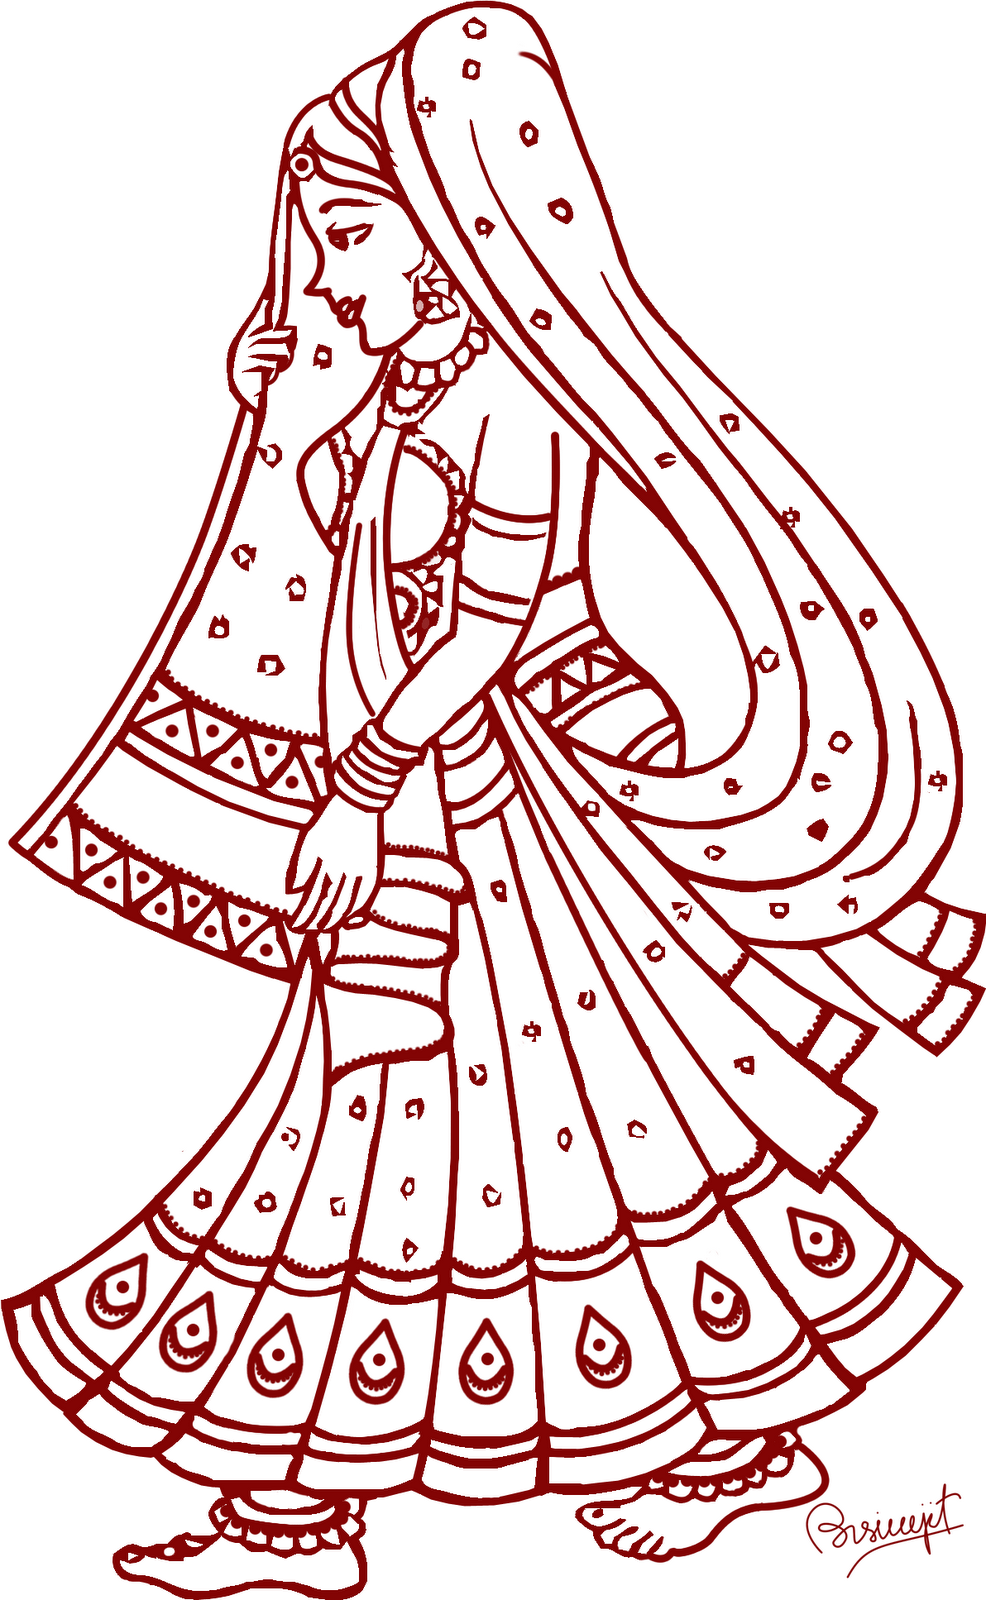 Indian wedding clipart images black and white